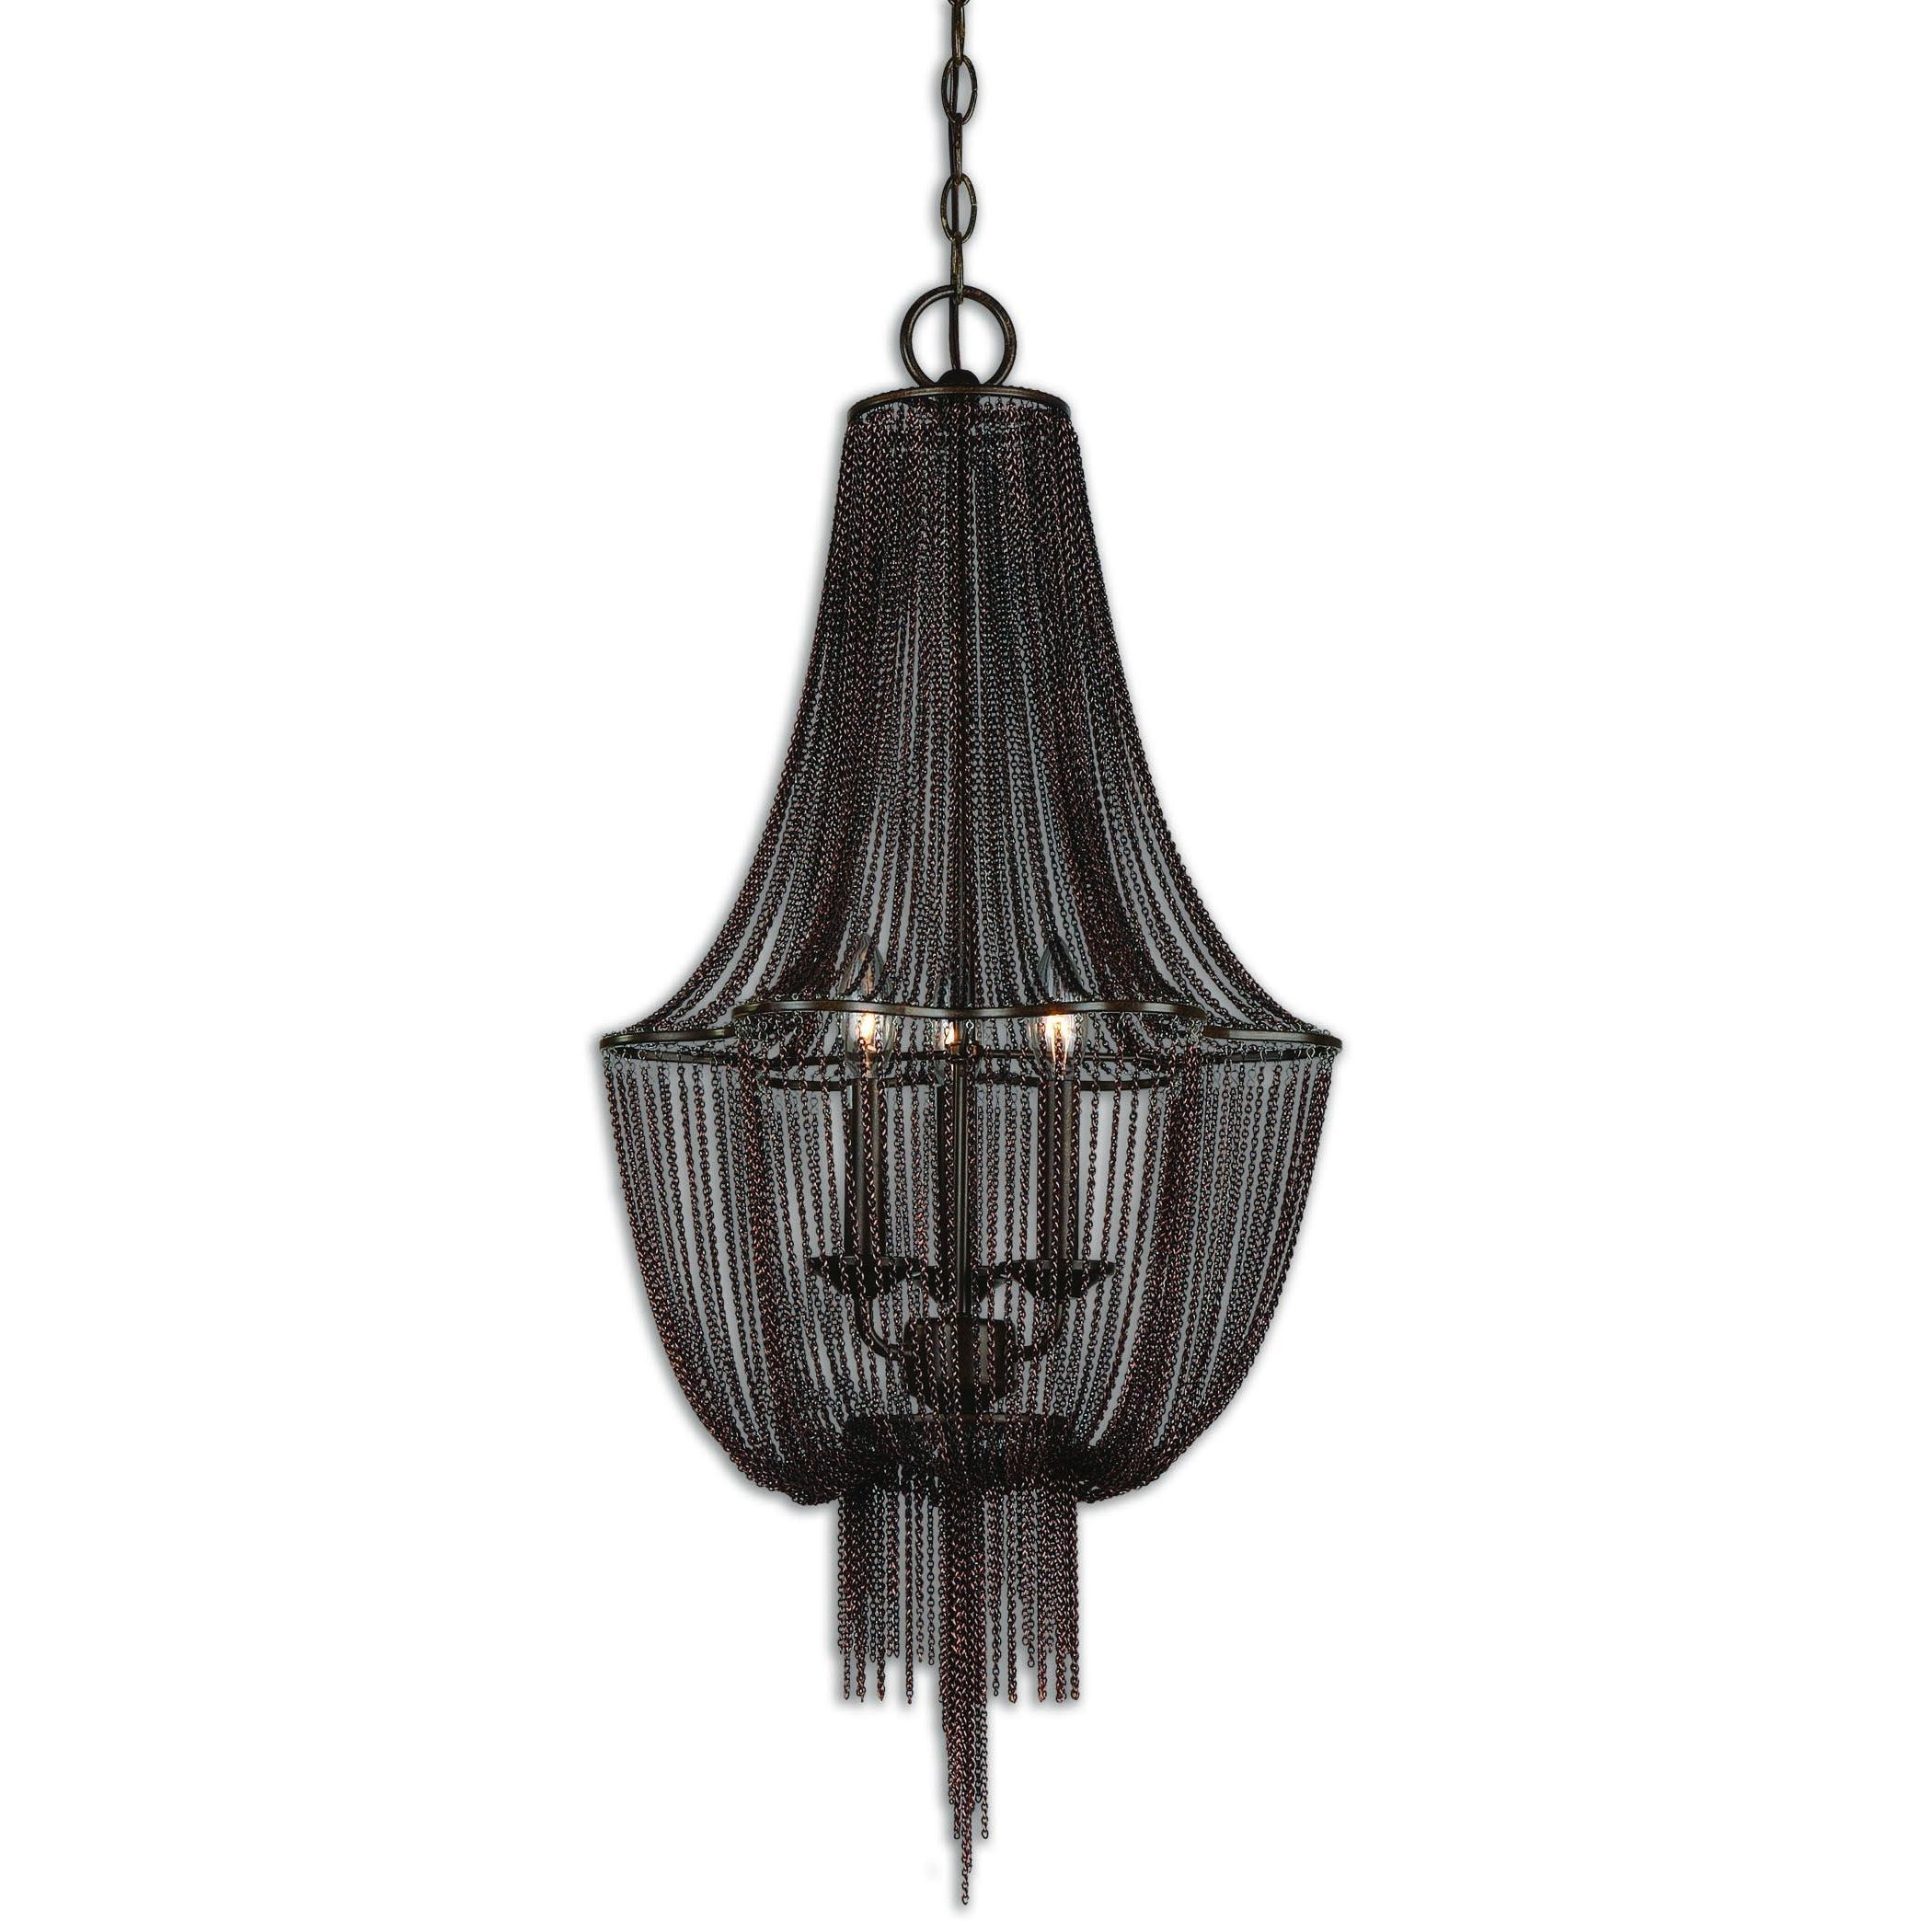 Made of dark oil rubbed bronze metal this Lezzeno chandelier